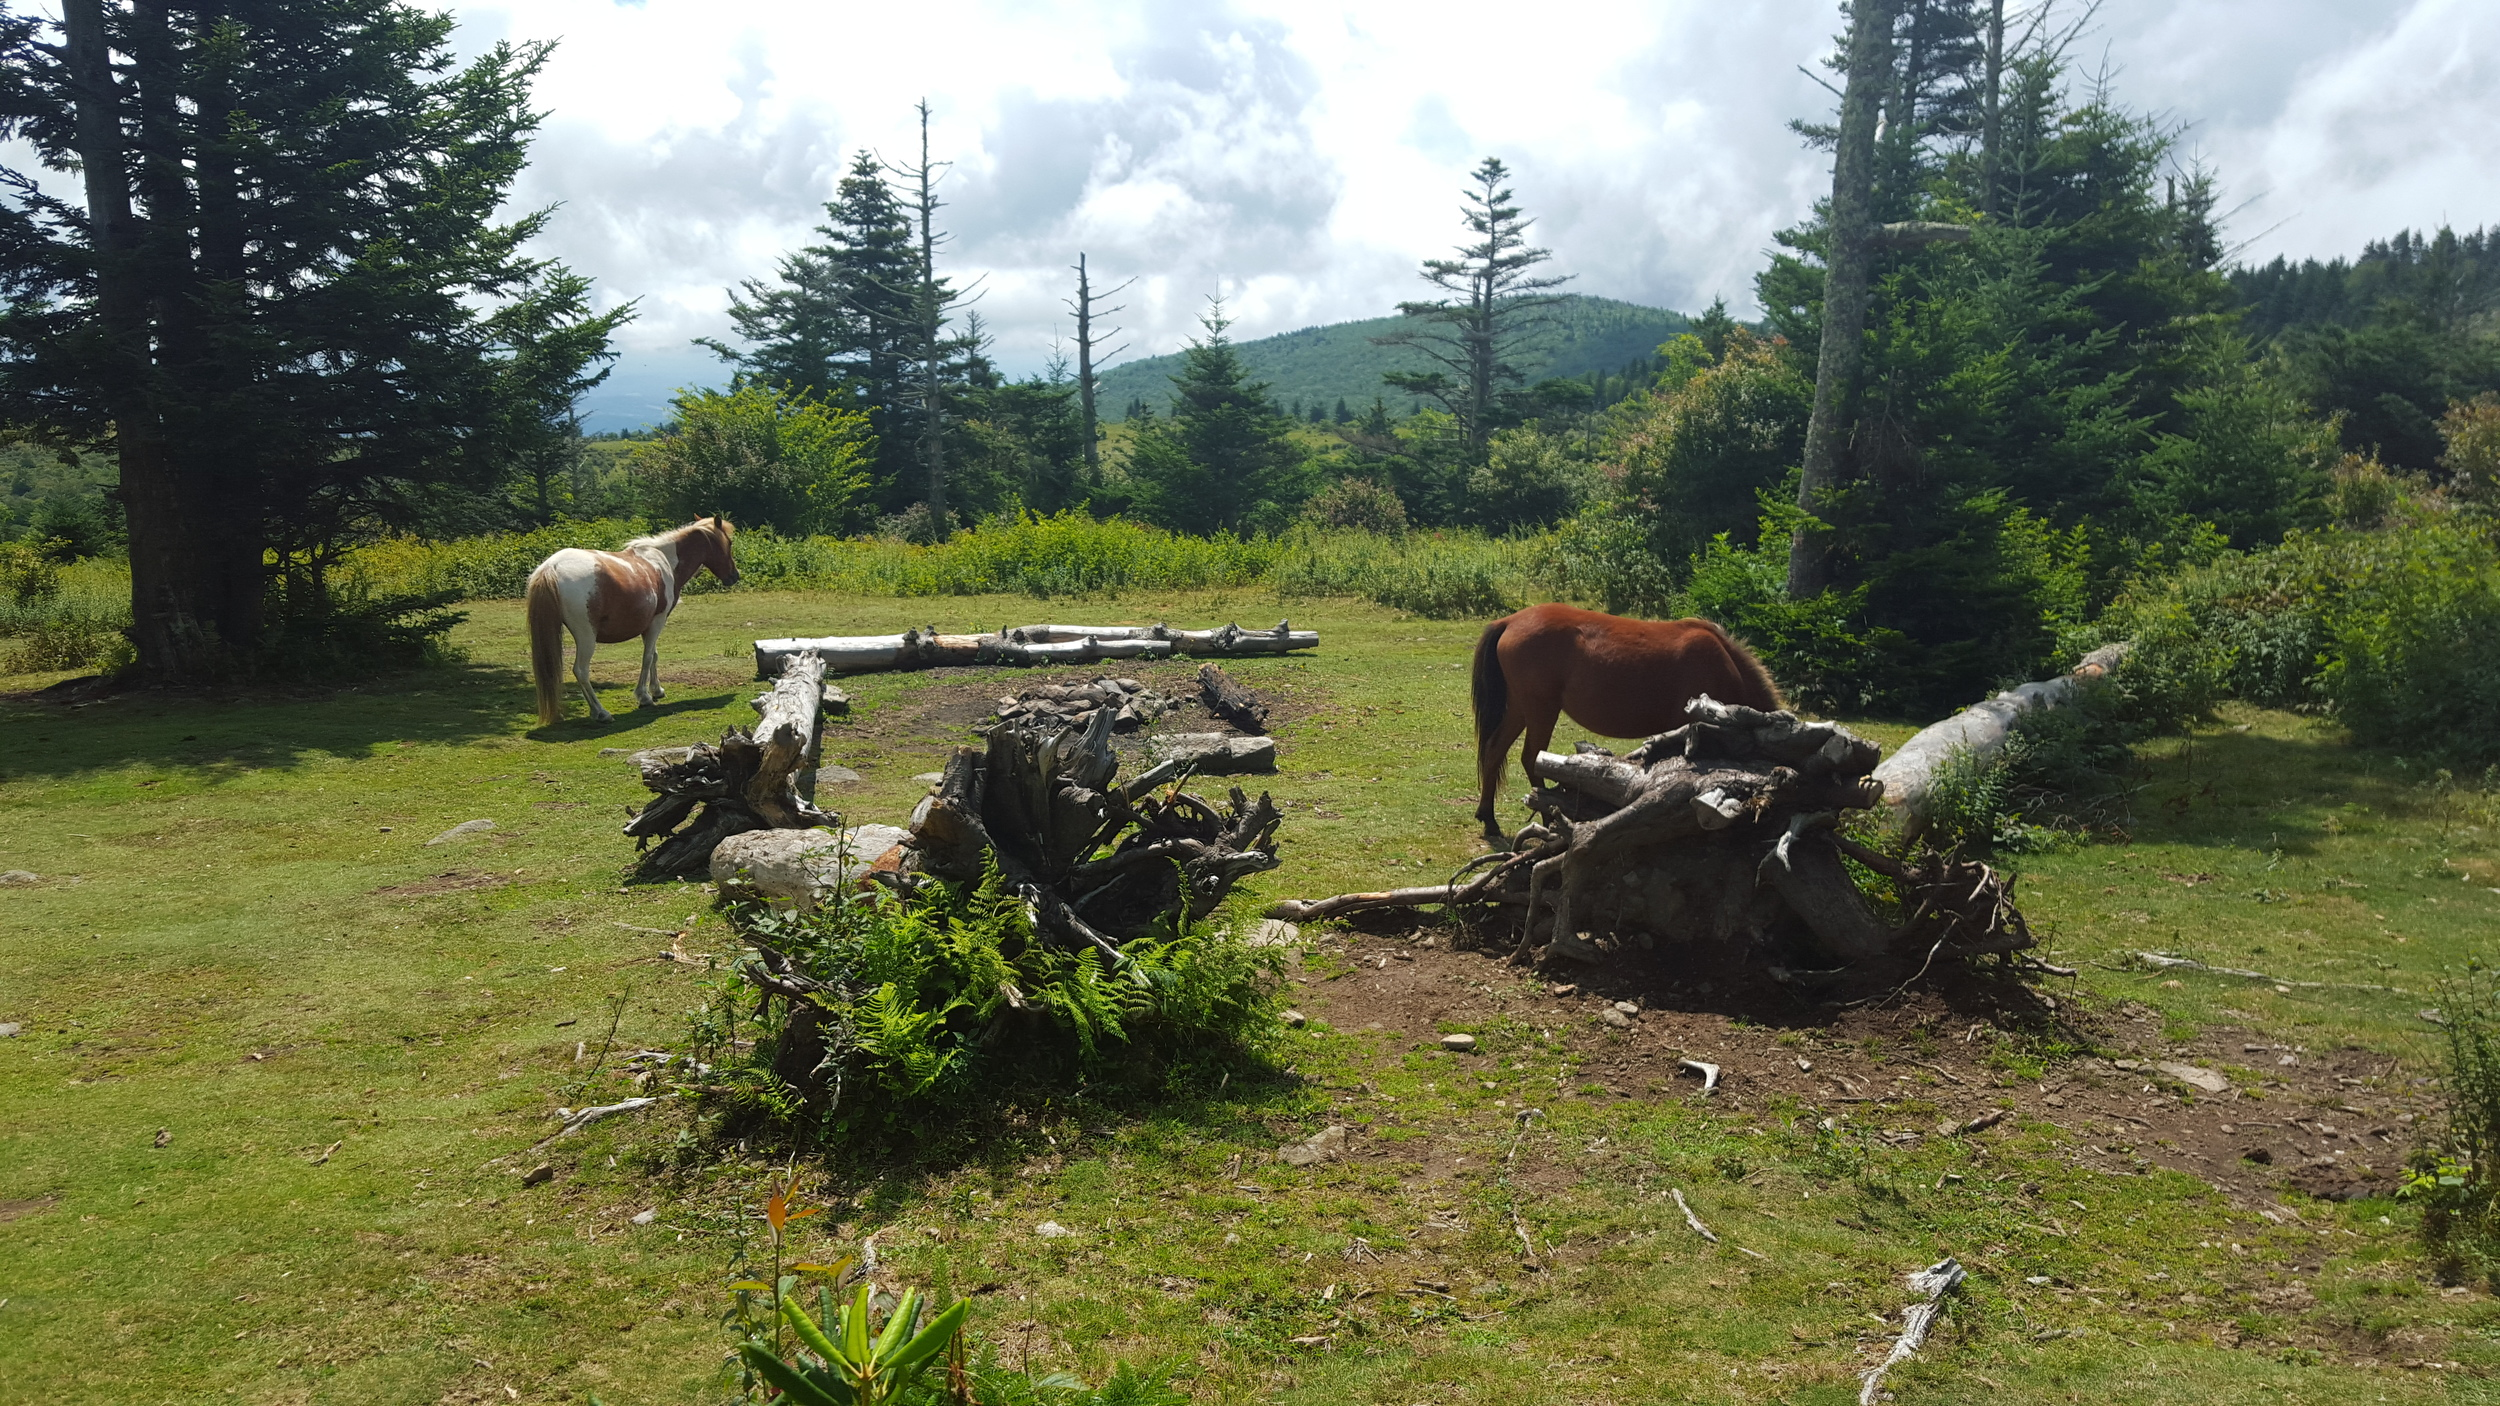 Ponies roam free in Grayson Highlands State Park